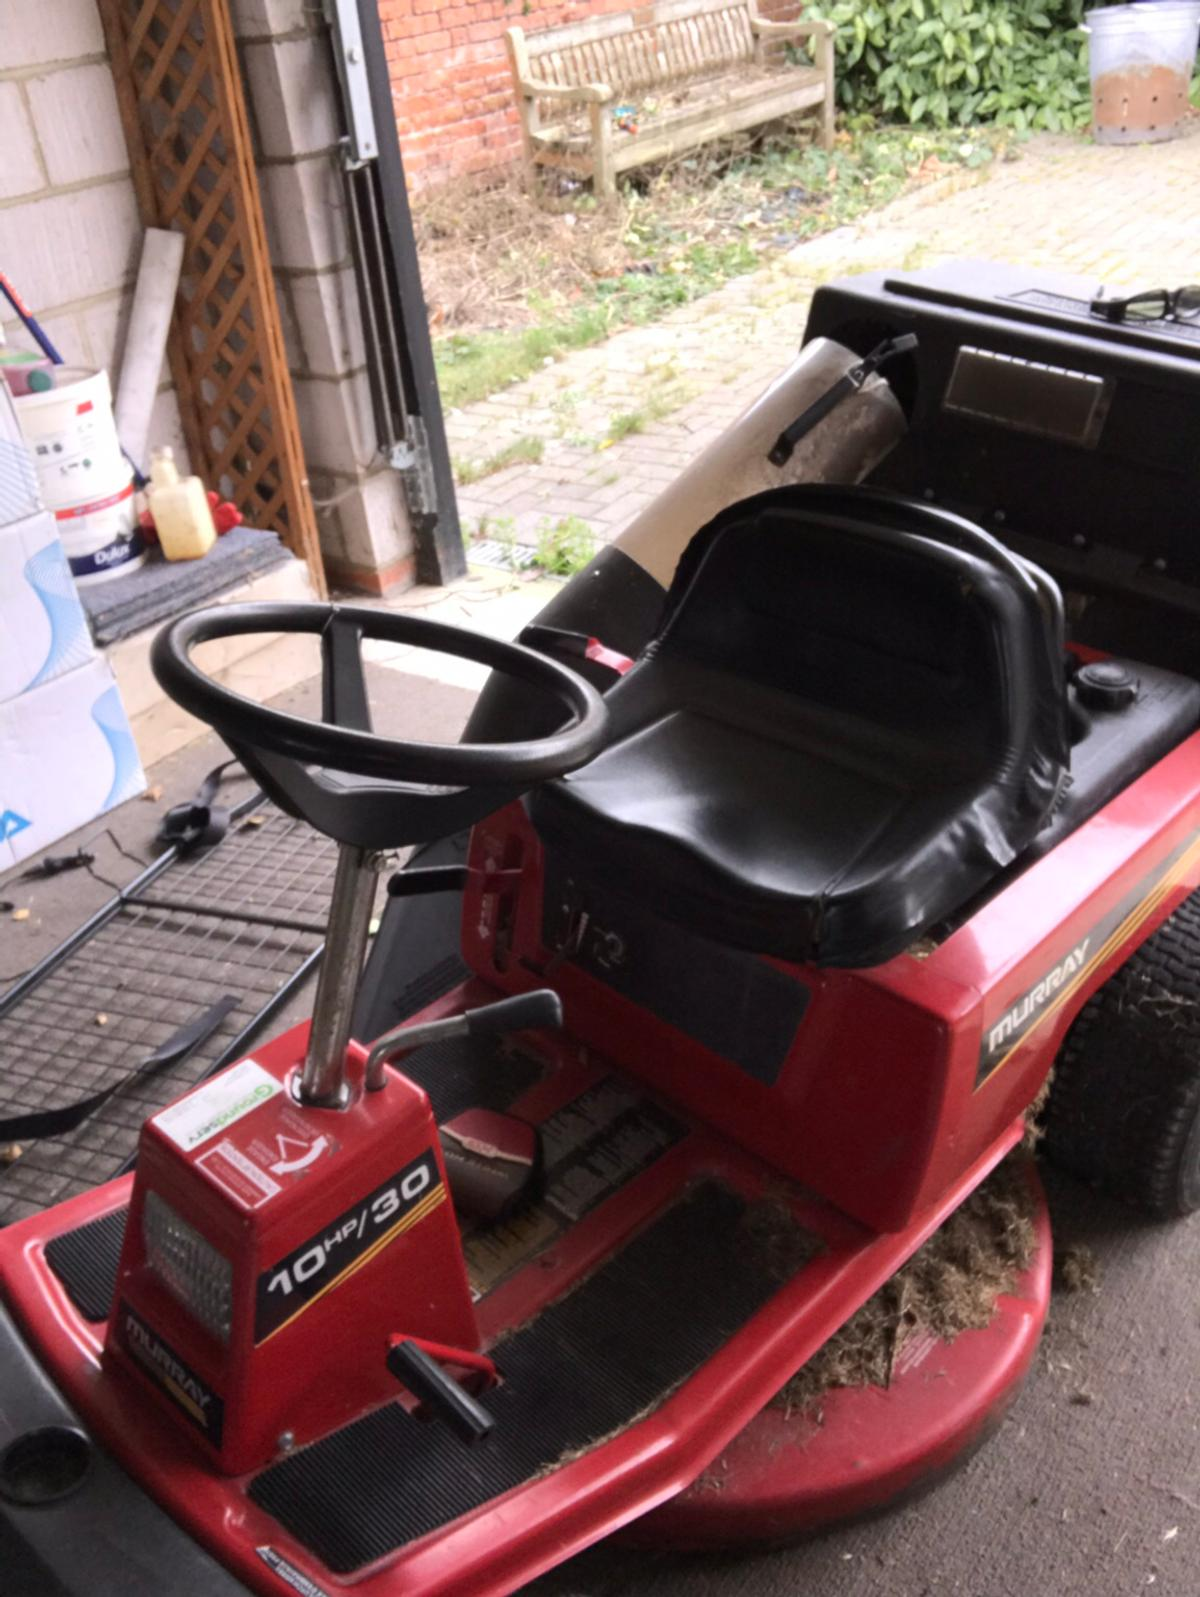 Murray ride on lawn mower in RH1 Banstead for £50 00 for